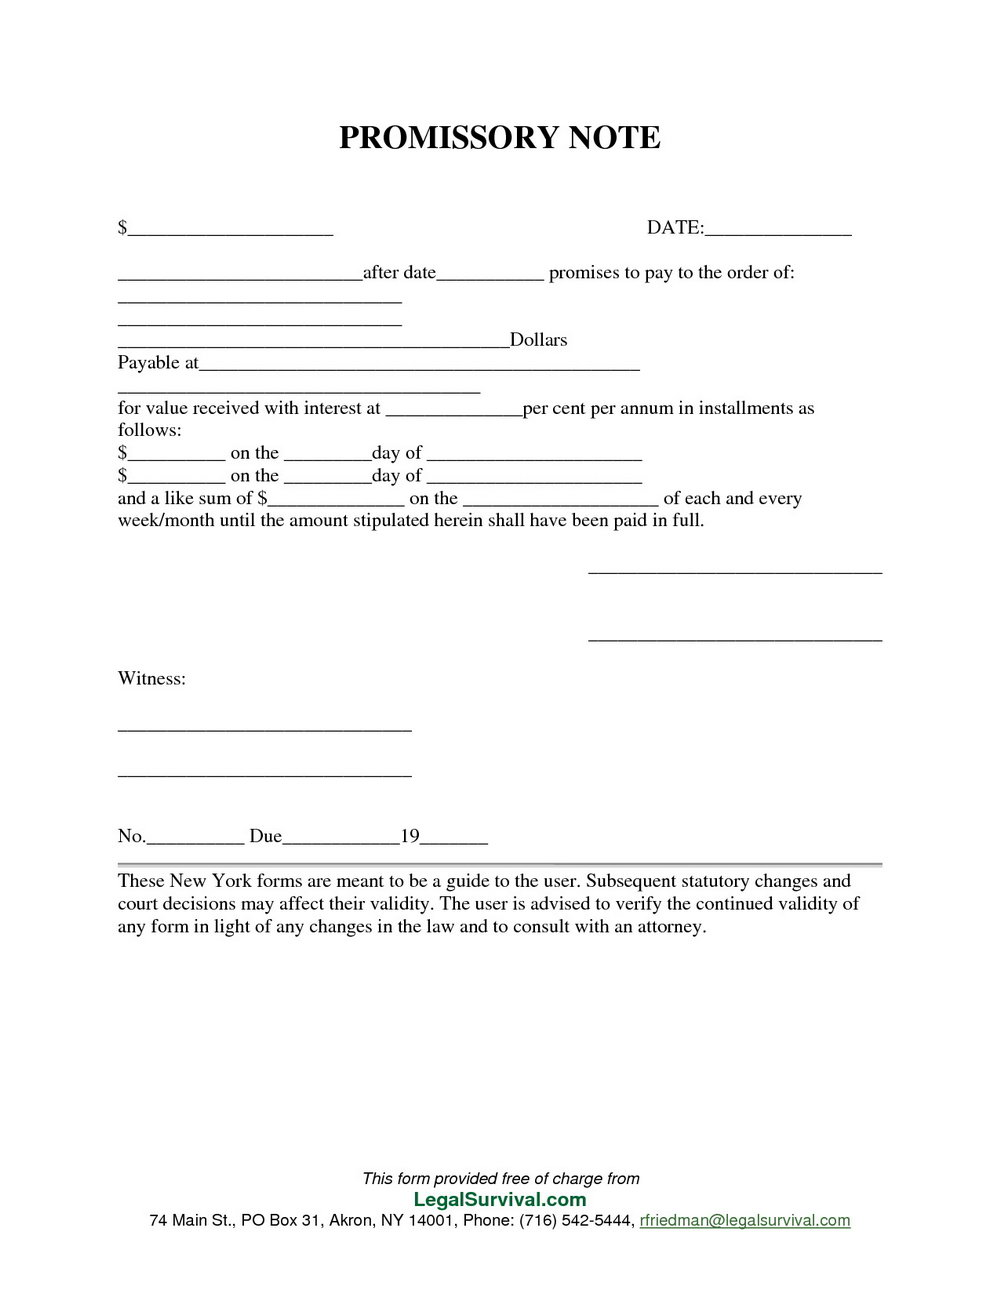 Promissory Note Template Philippines